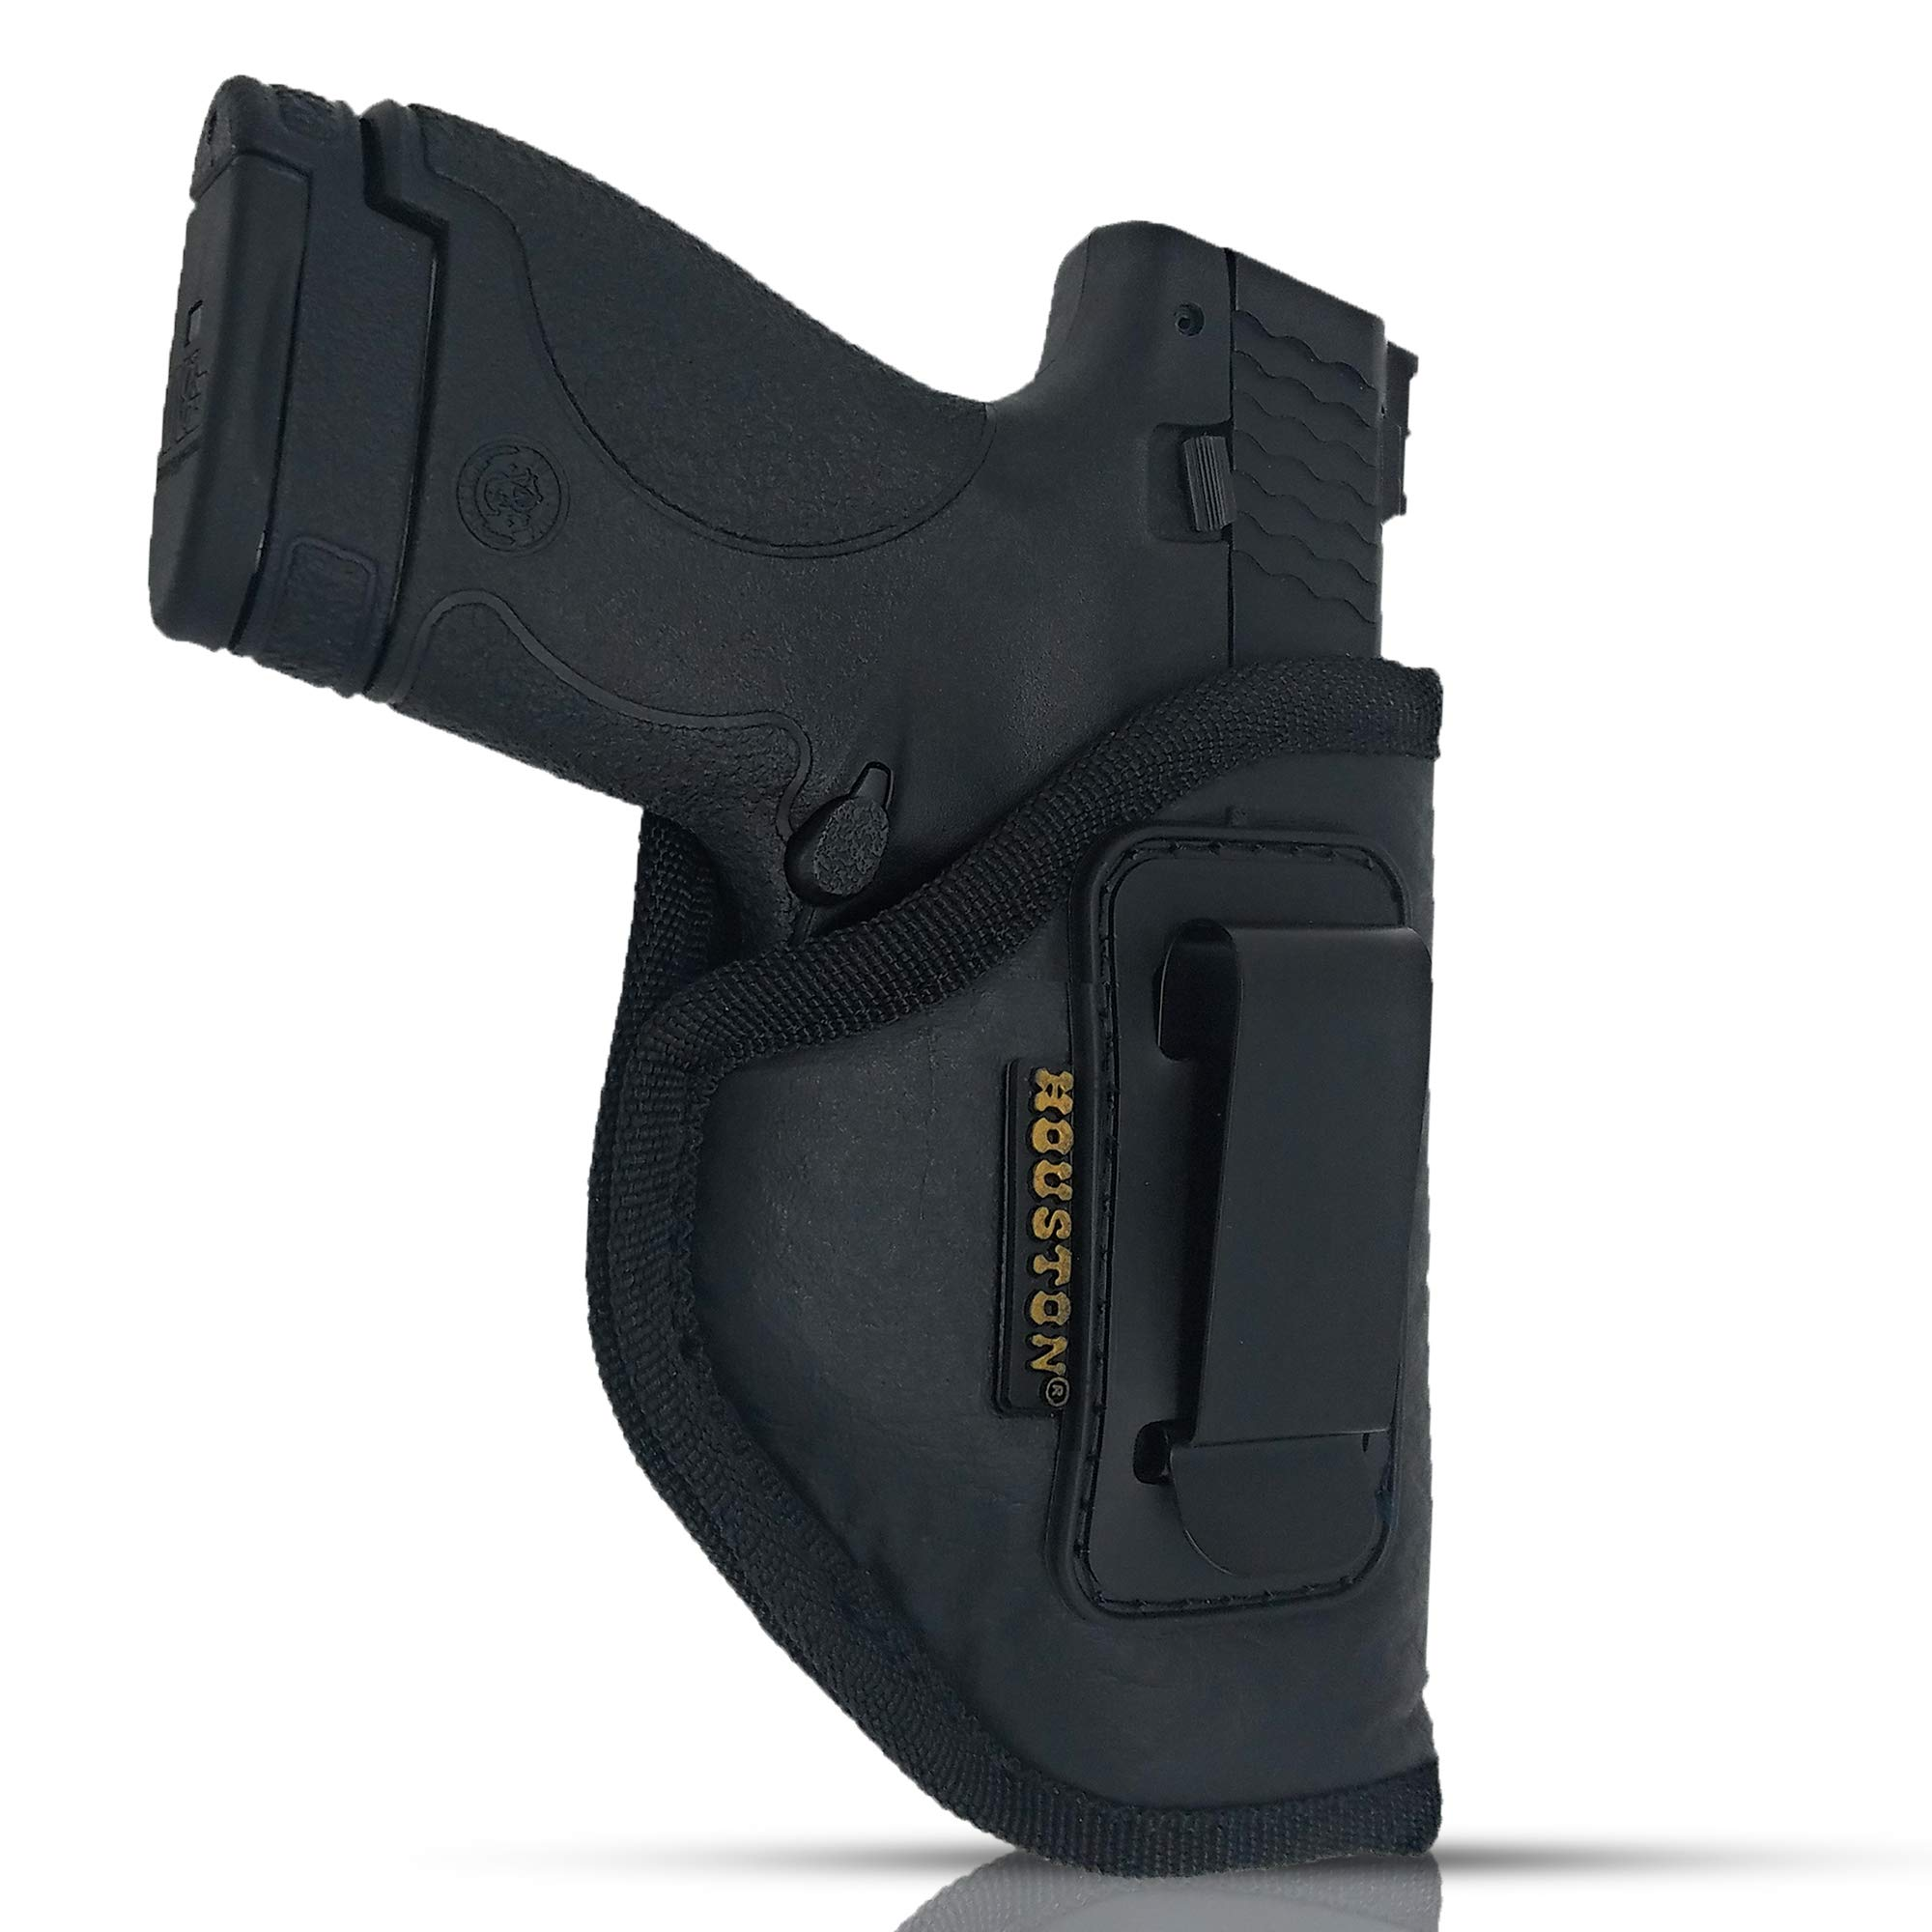 IWB Gun Holster by Houston - ECO Leather Concealed Carry Soft Material | Fits Glock 26/27/33, Shield, XDS, Taurus 709, Taurus Pro C, Walther P22, Beretta Nano, SCCY Sky.Ruger LC9 (Right Hand) by Houston Gun Holsters